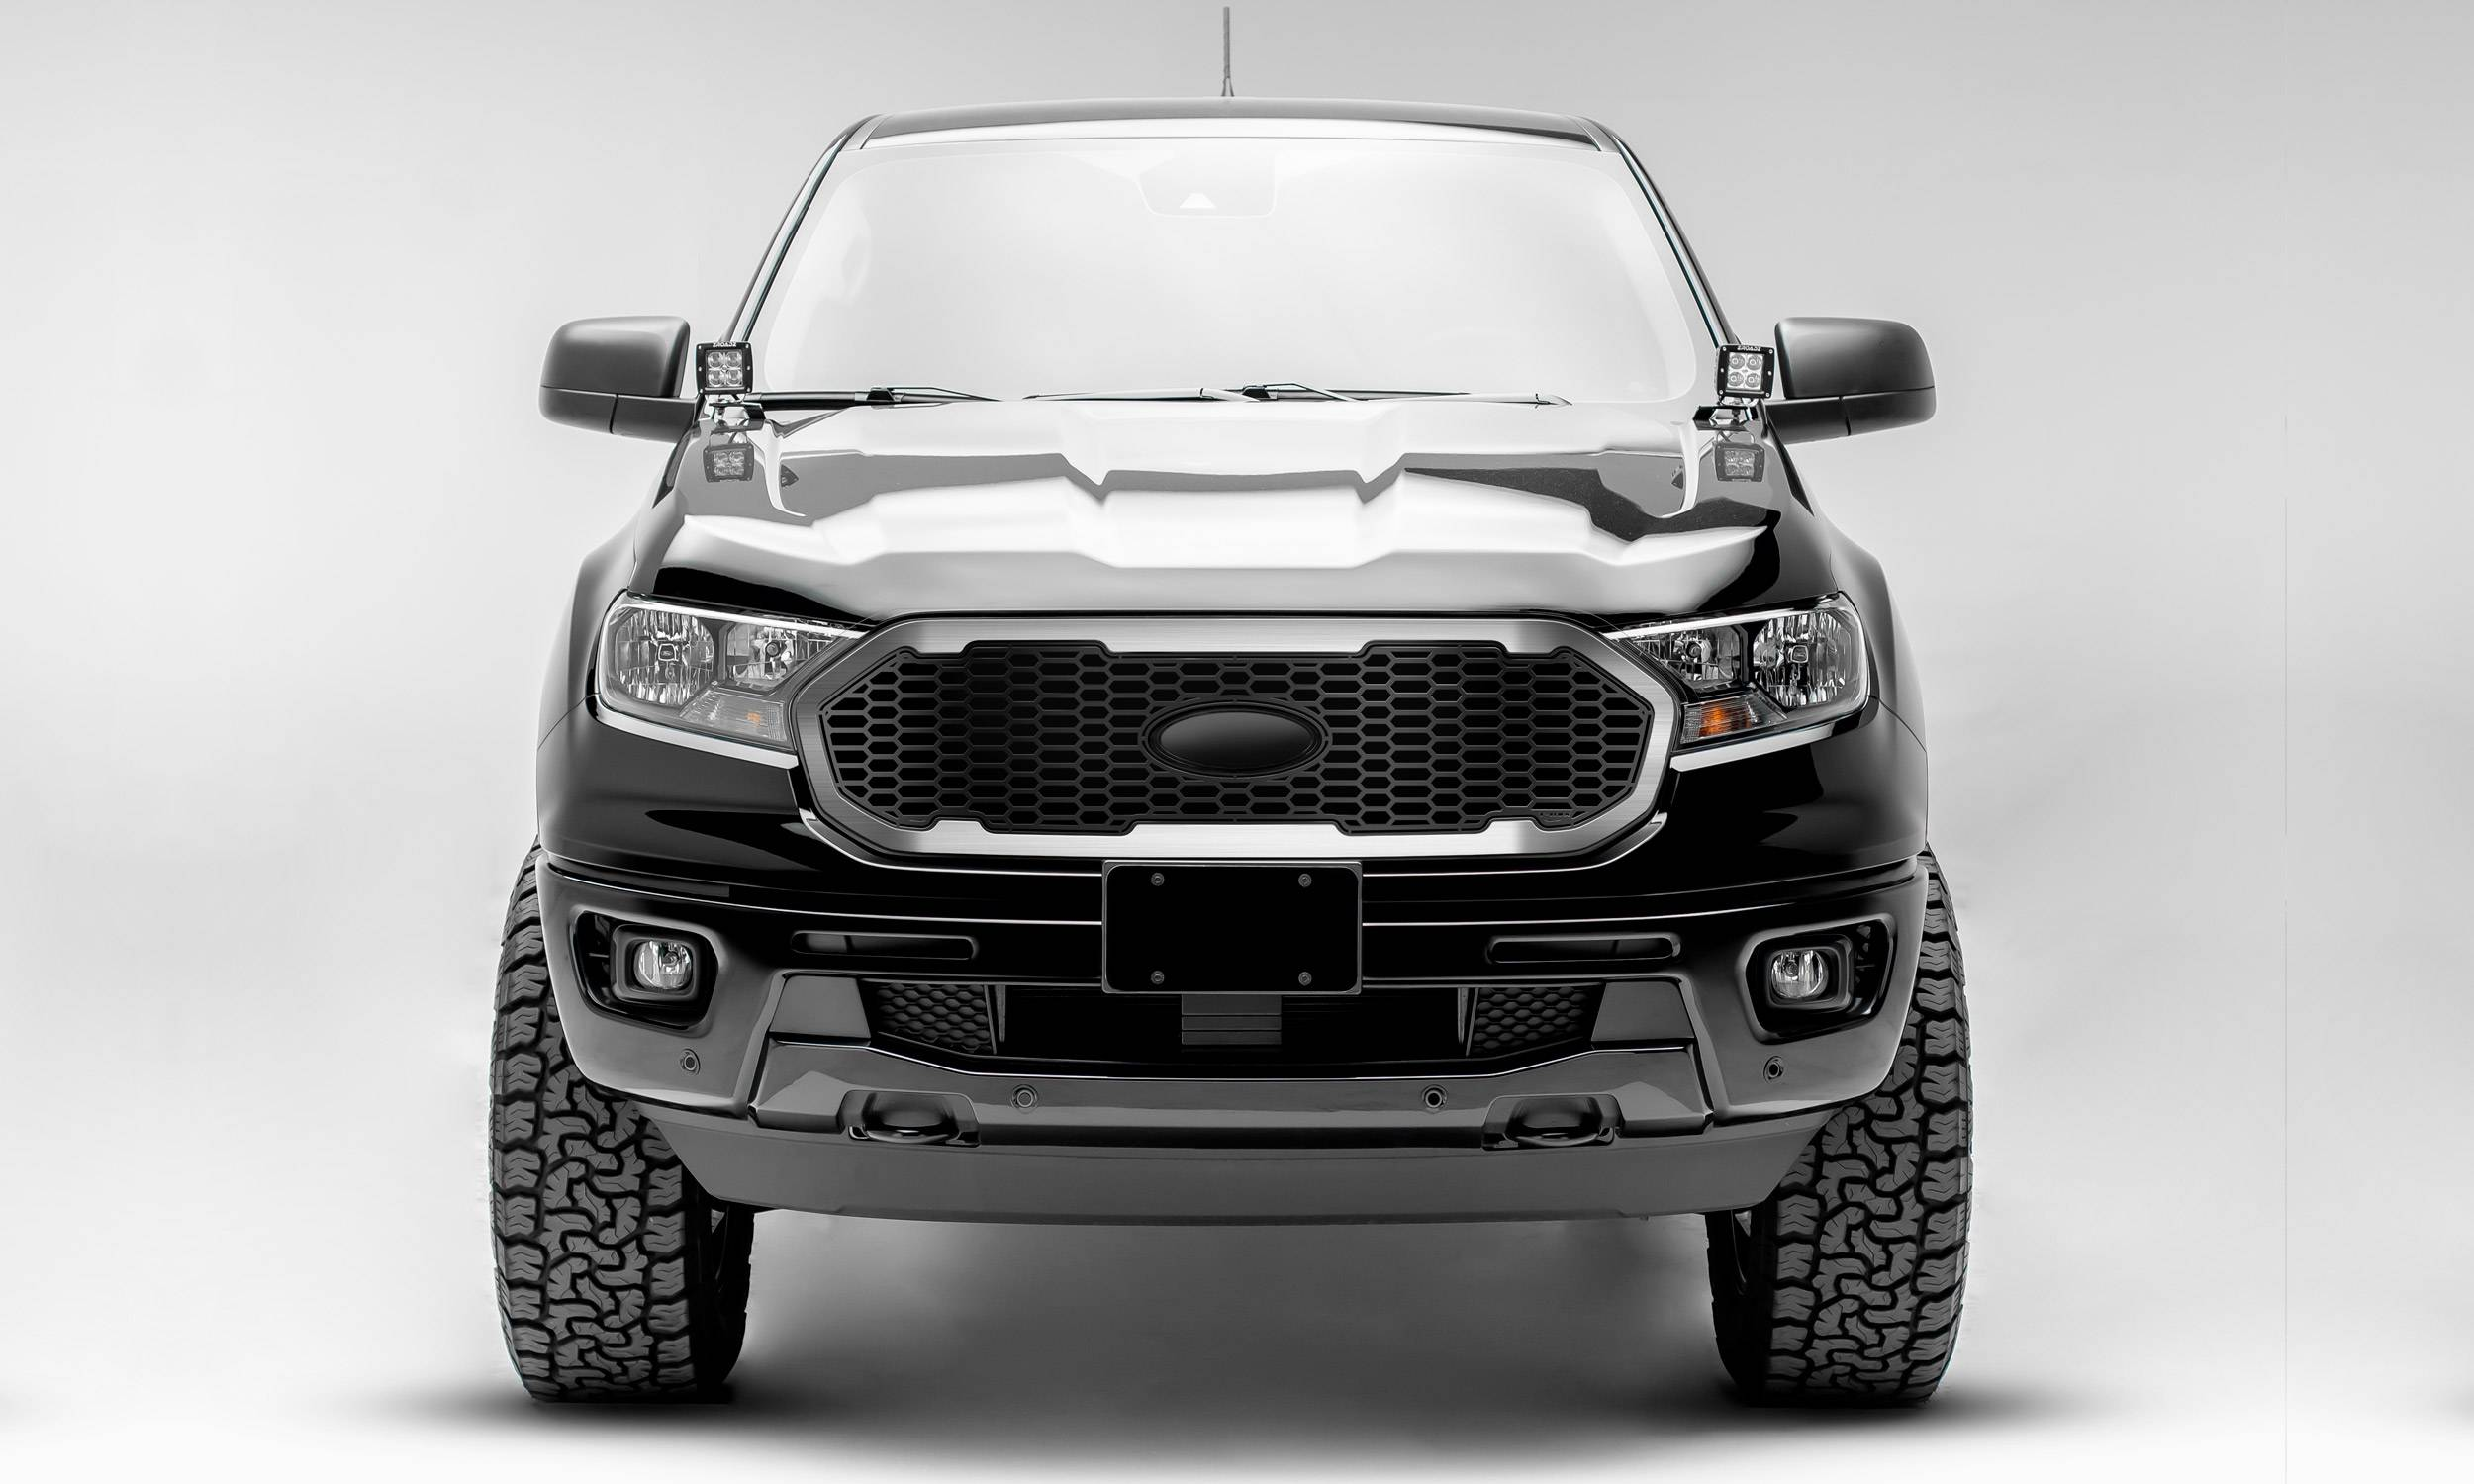 T-REX Grilles - 2019-2021 Ford Ranger Laser X Grille, No Studs, 1 Pc, Replacement with Trim, must reuse factory logo - PN #6315823